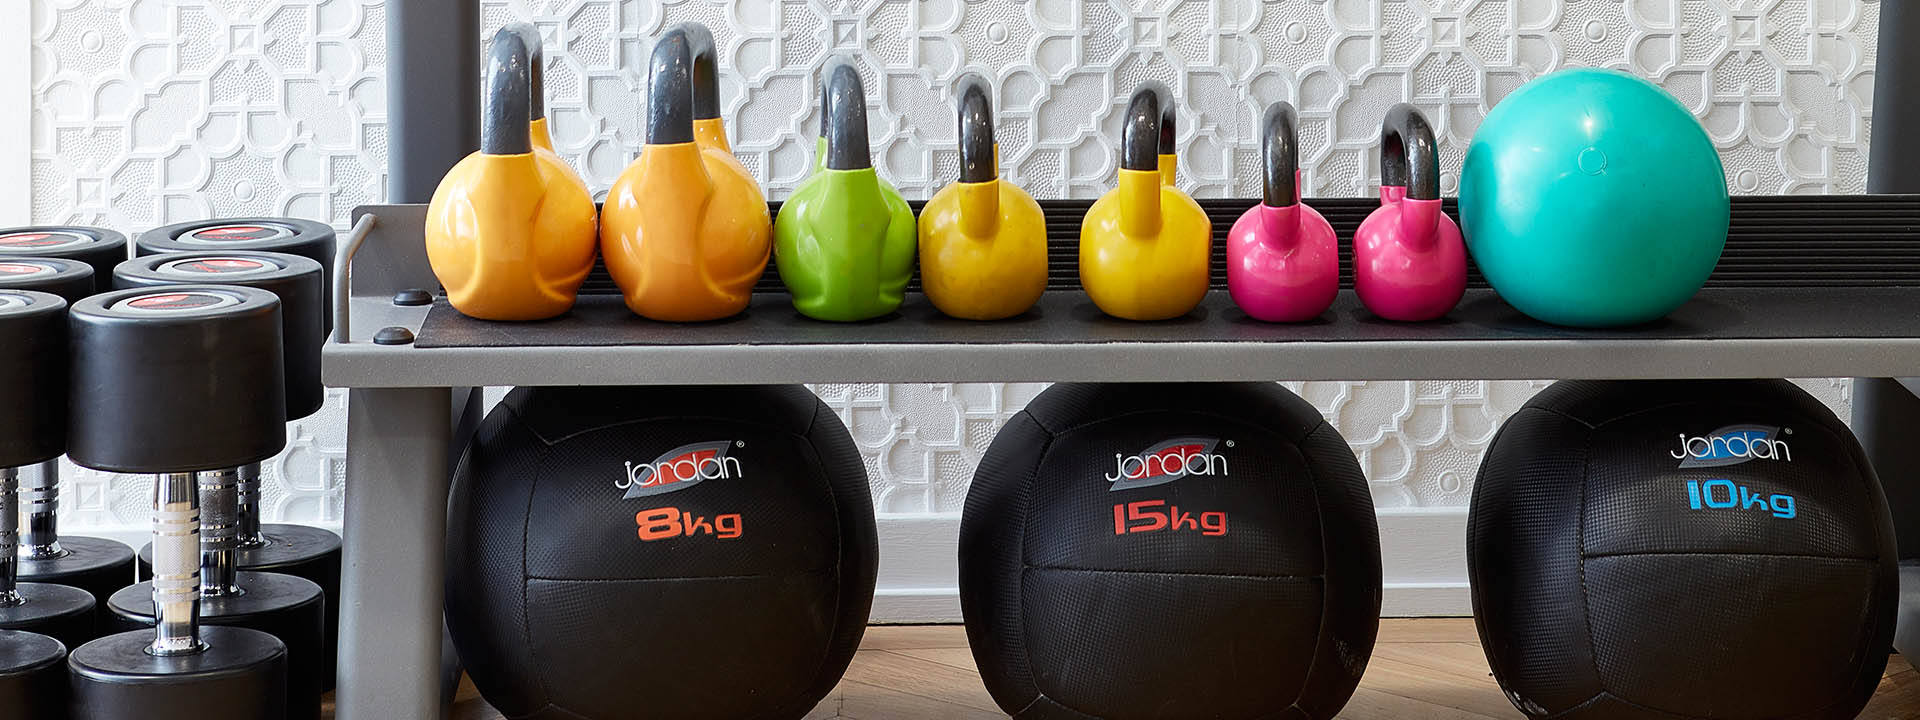 A row of kettle bells and medicine balls